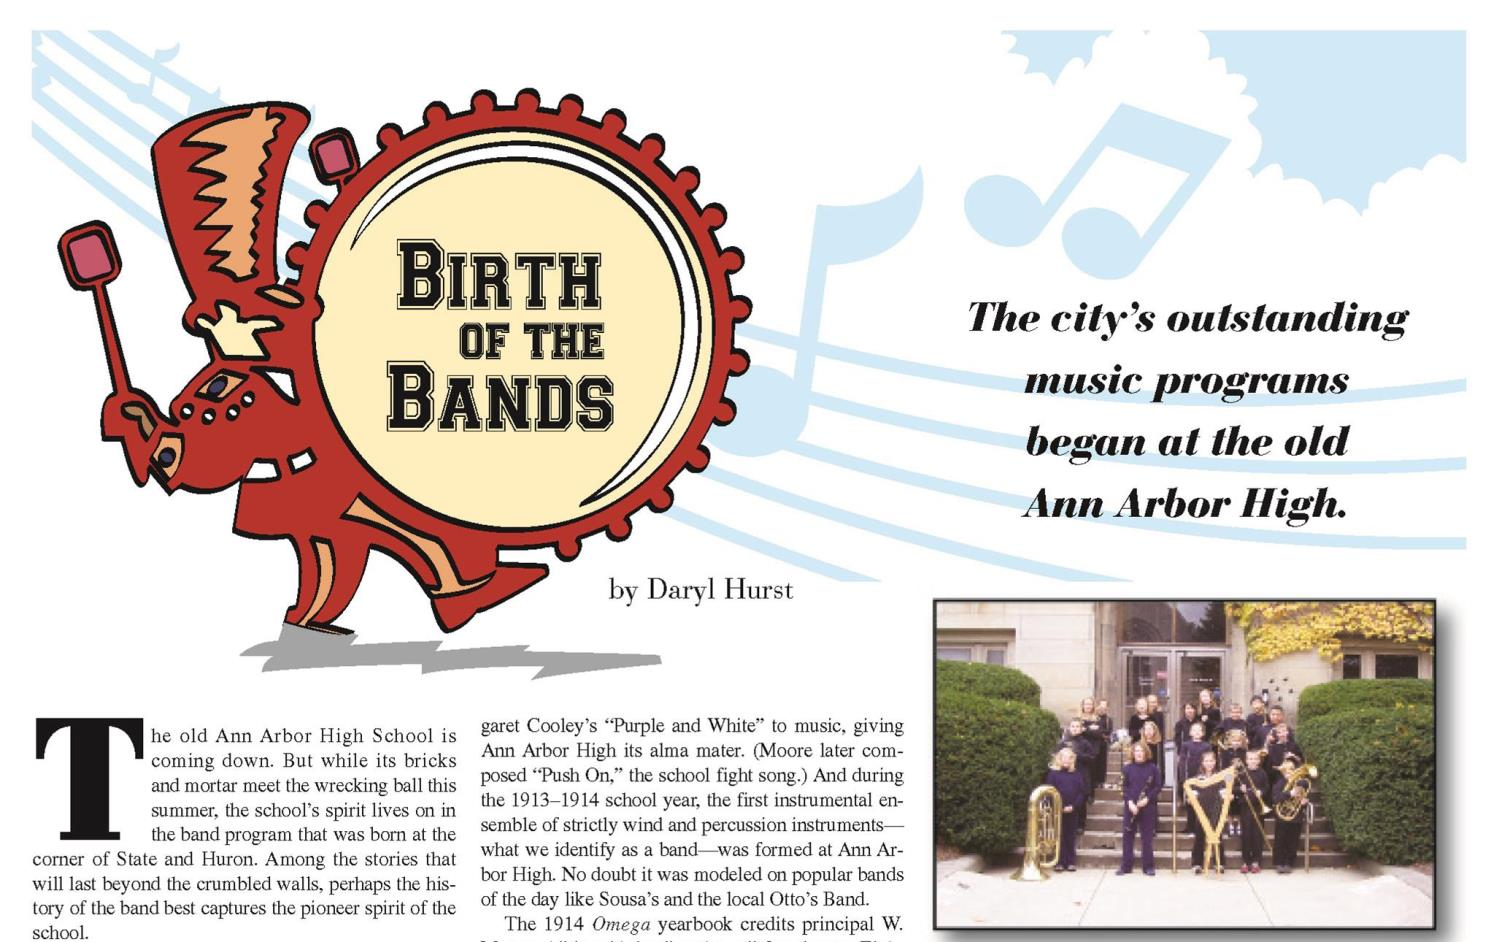 Birth of the Bands  from the  June 2006  issue.